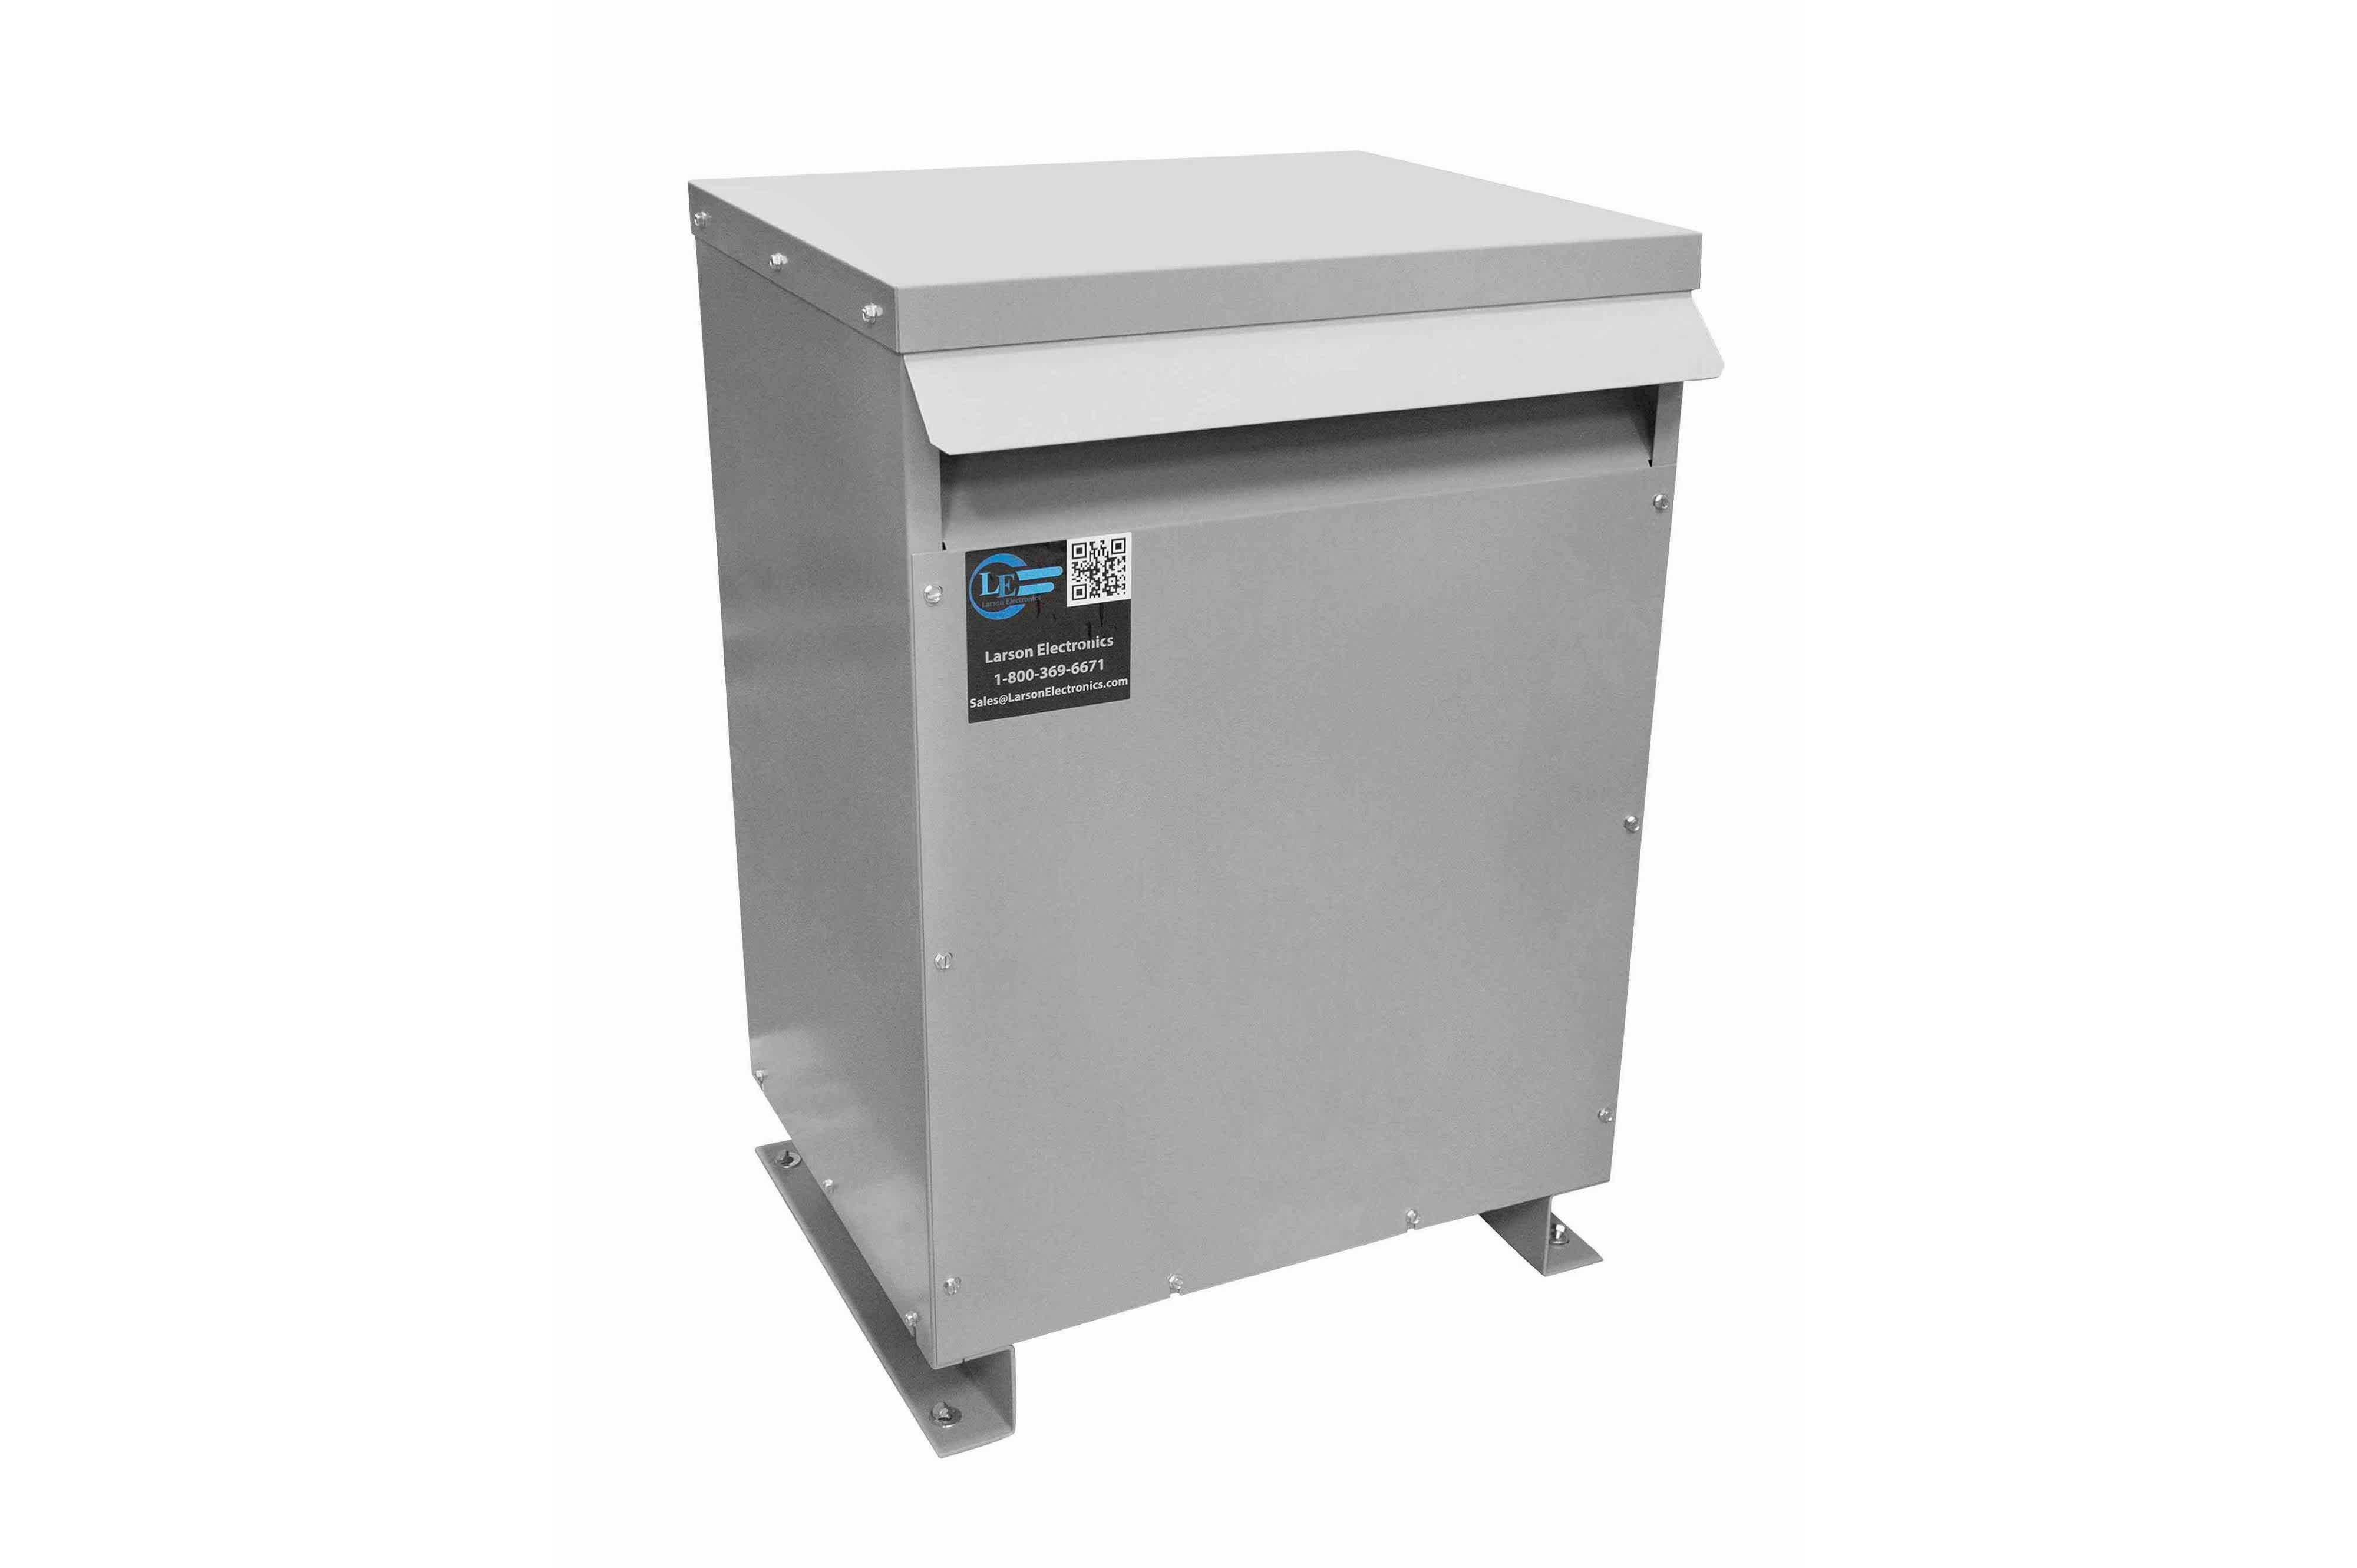 500 kVA 3PH Isolation Transformer, 380V Wye Primary, 240V Delta Secondary, N3R, Ventilated, 60 Hz